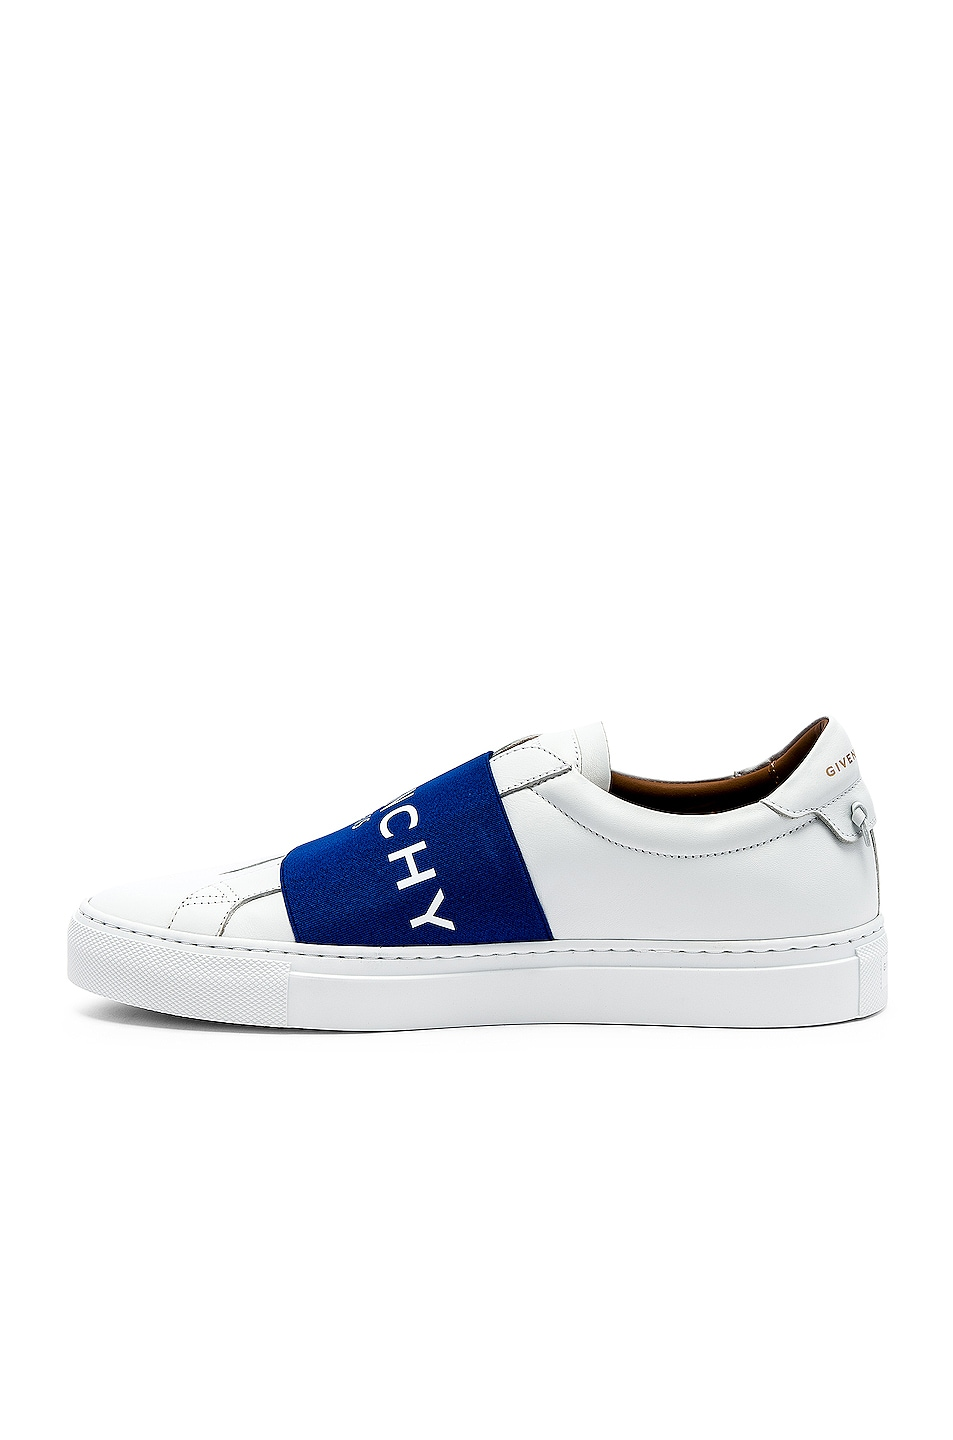 Image 5 of Givenchy Elastic Sneakers in White & Blue